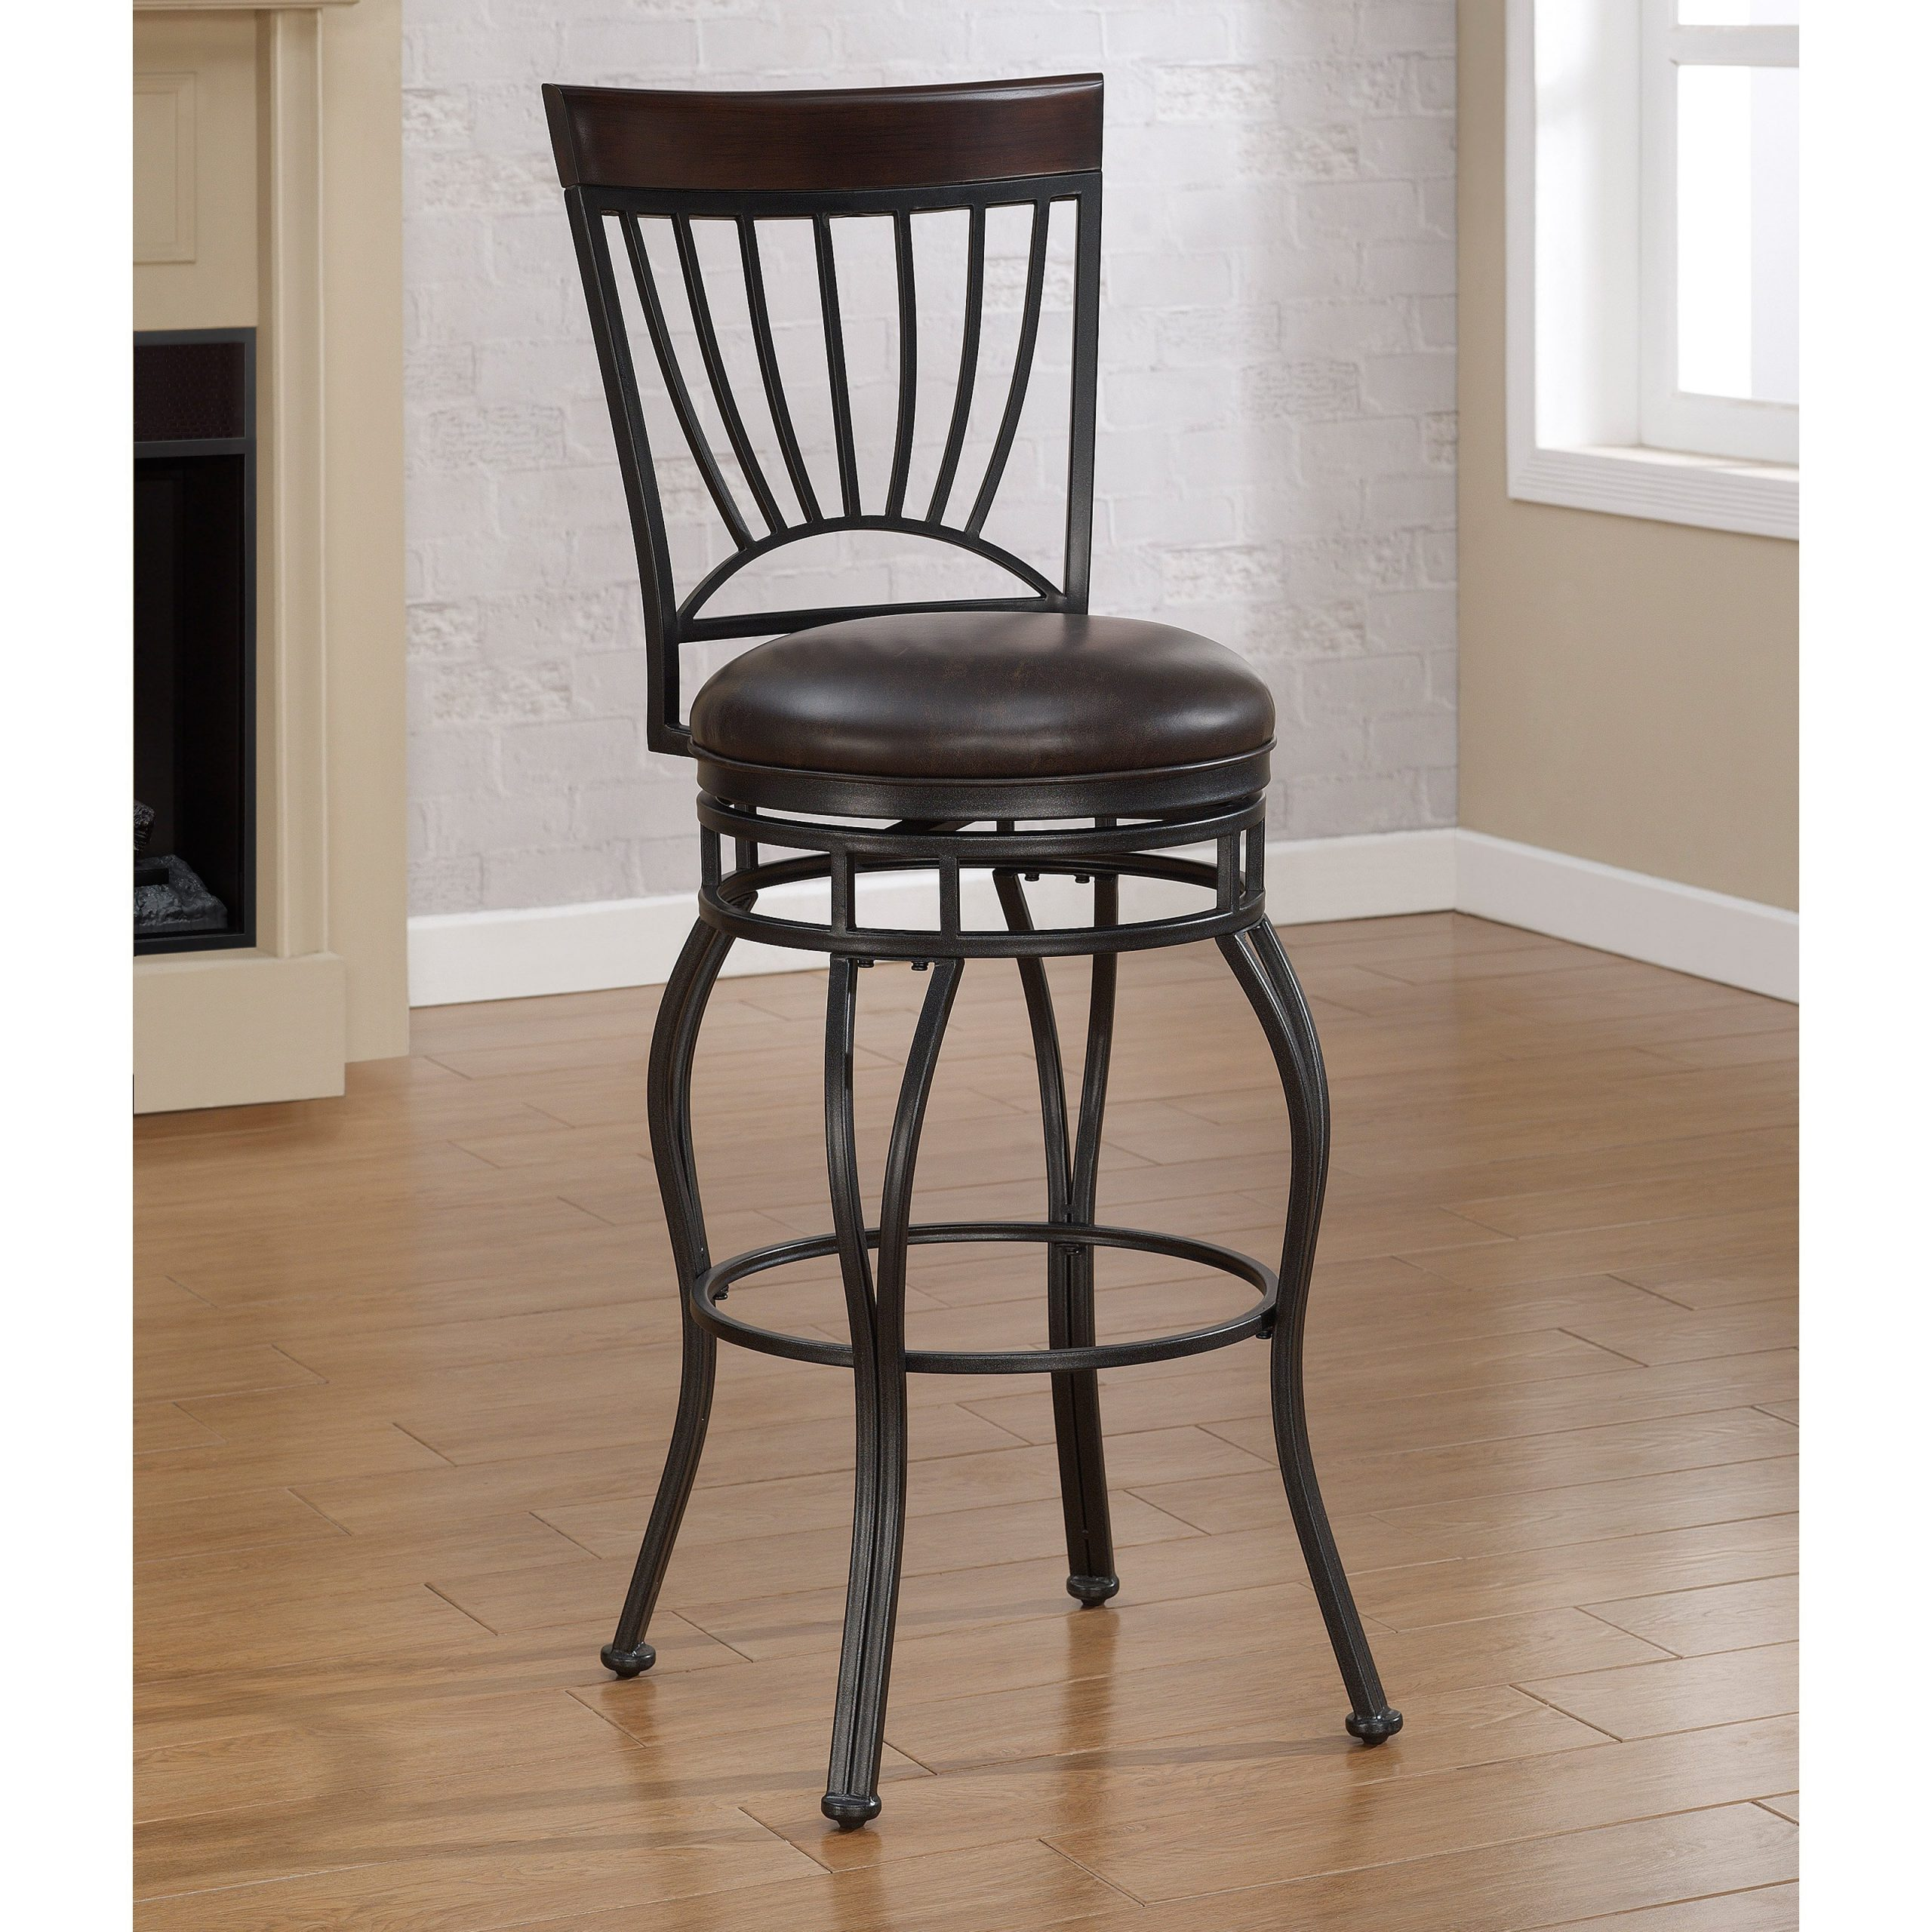 Cast Stools Fascinating Pier One Wood Metal Stool Rustic Pertaining To 2018 Hearst Bar Tables (Image 7 of 25)